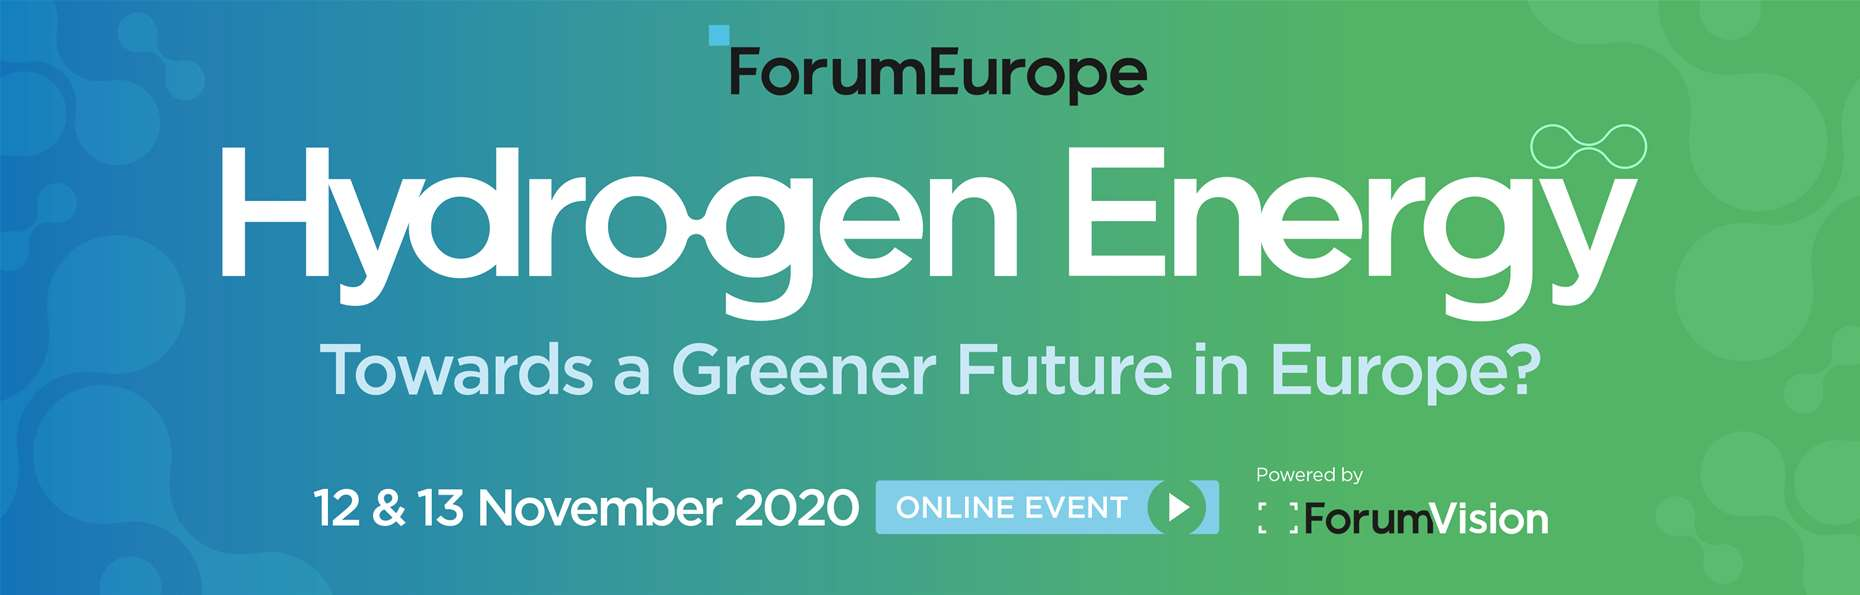 Hydrogen Energy conference